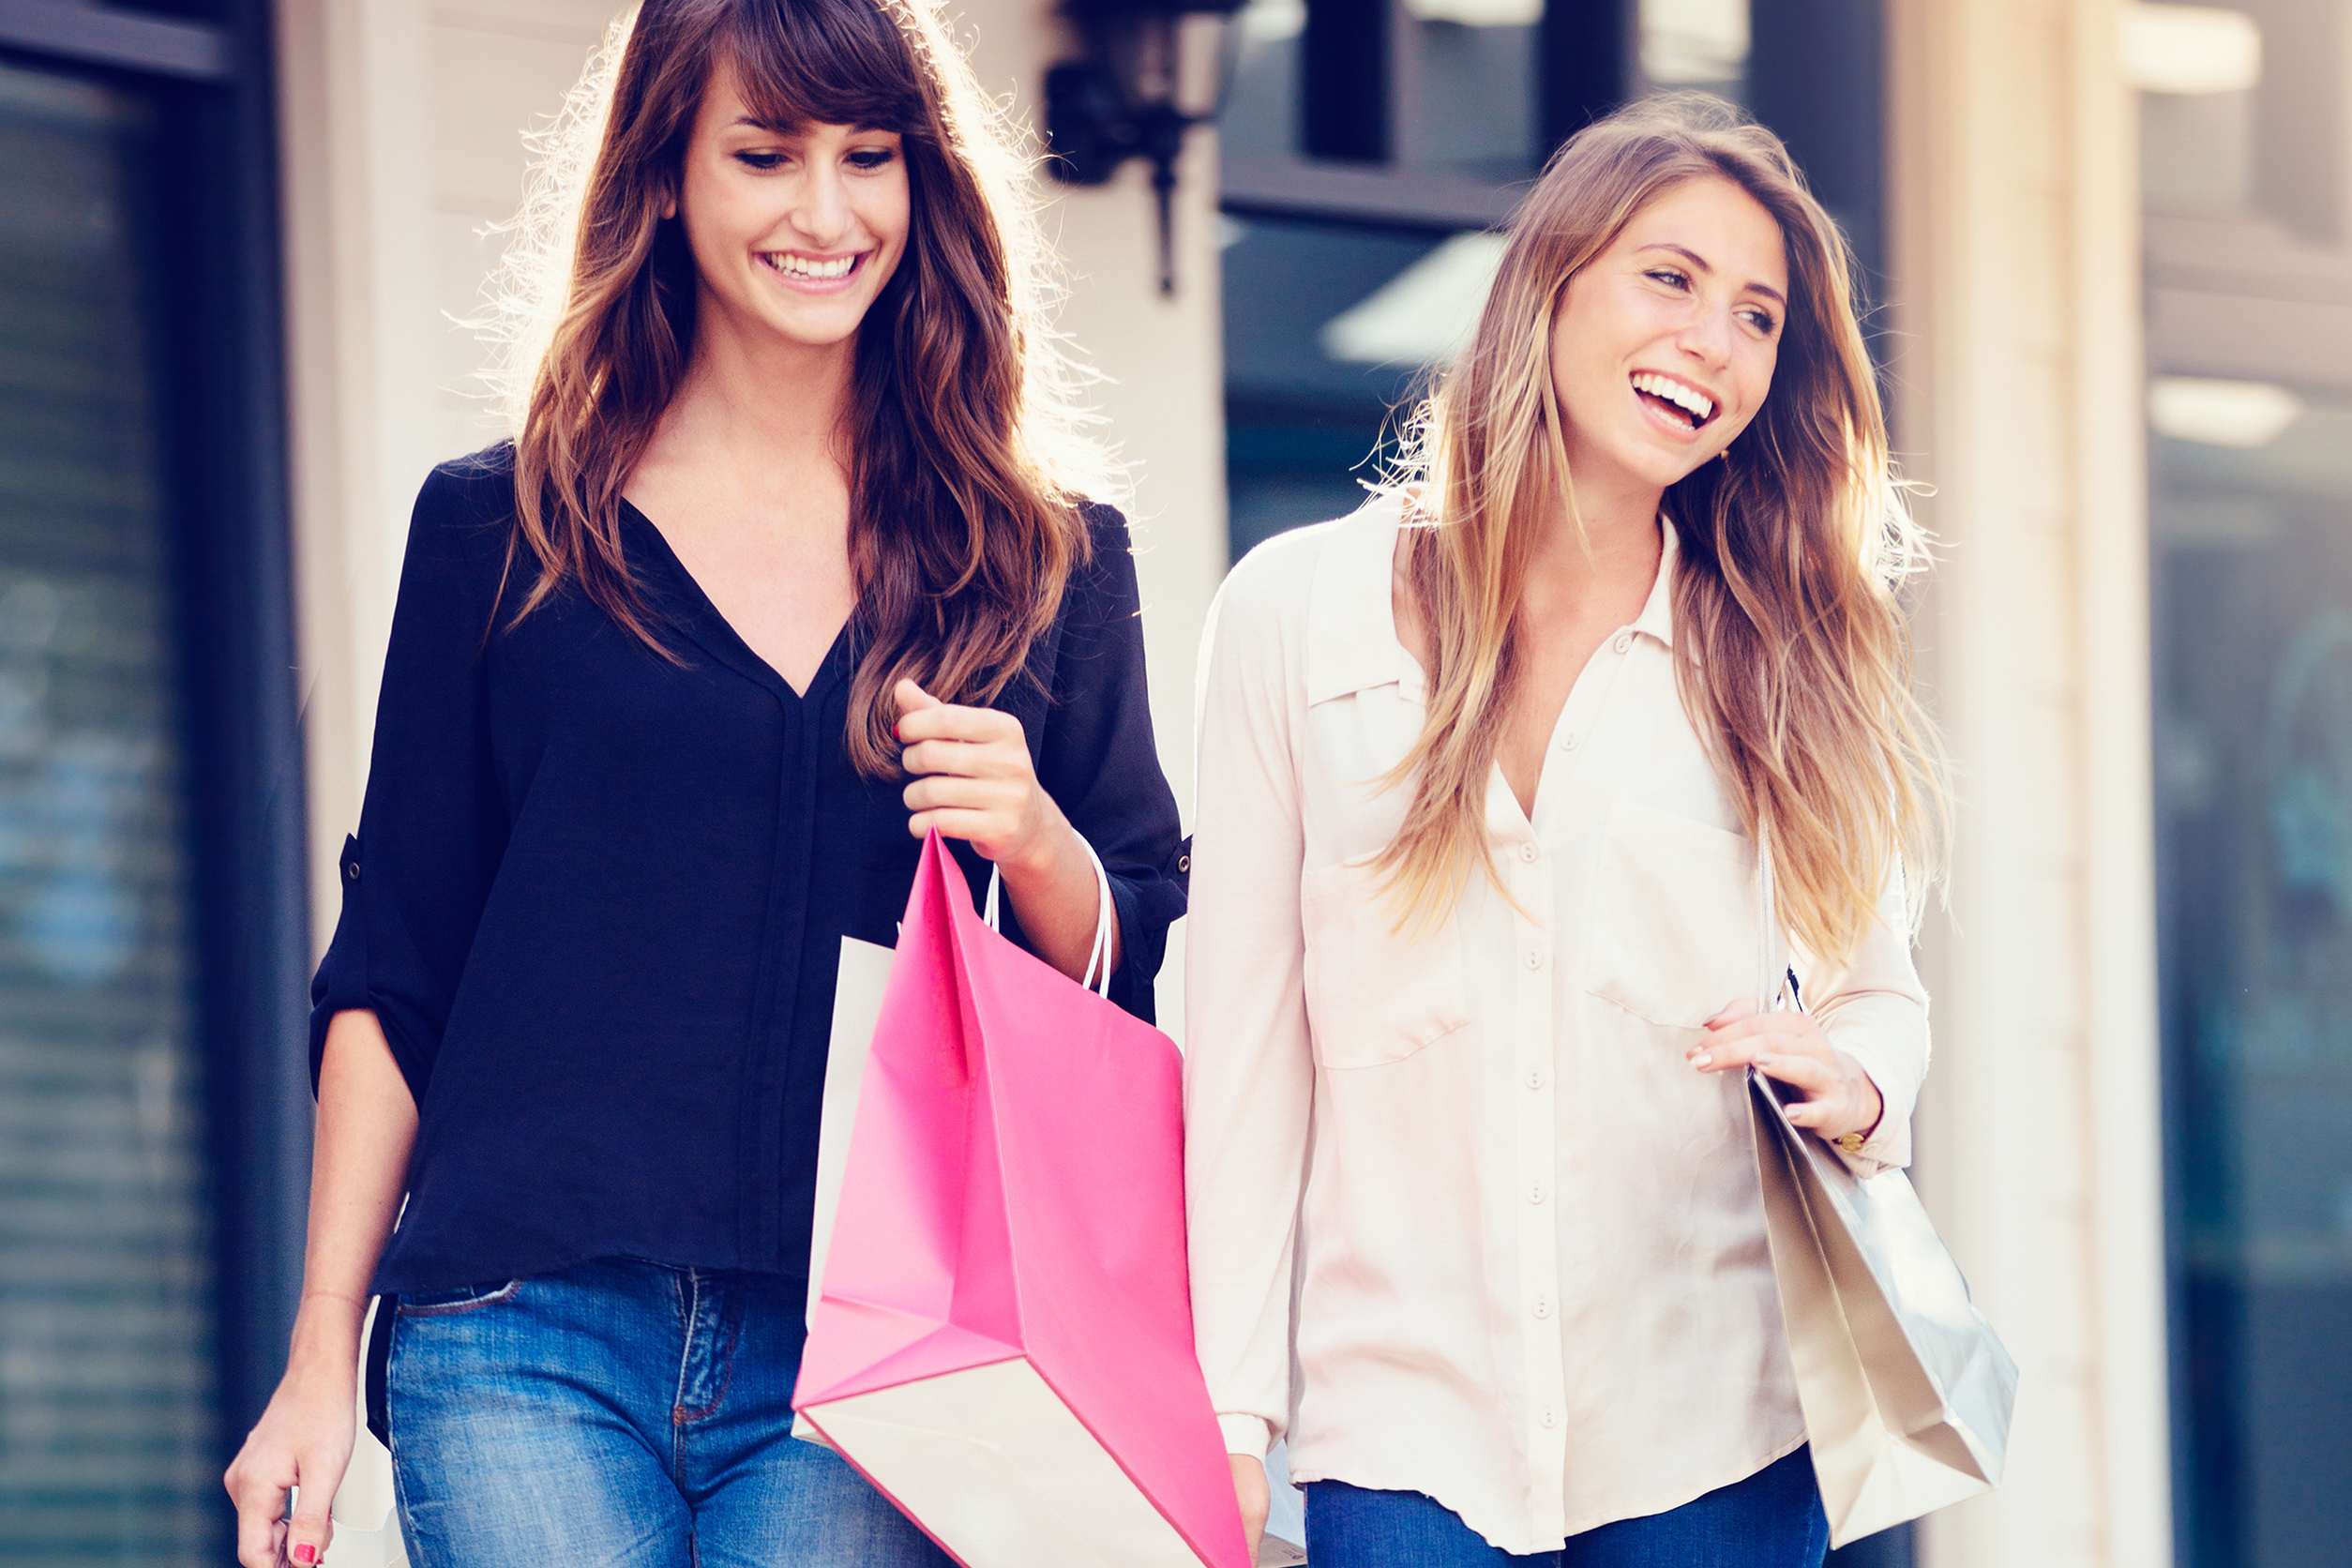 Settlers Green Outlet Mall North Conway makes perfect New England Girls Getaway activity